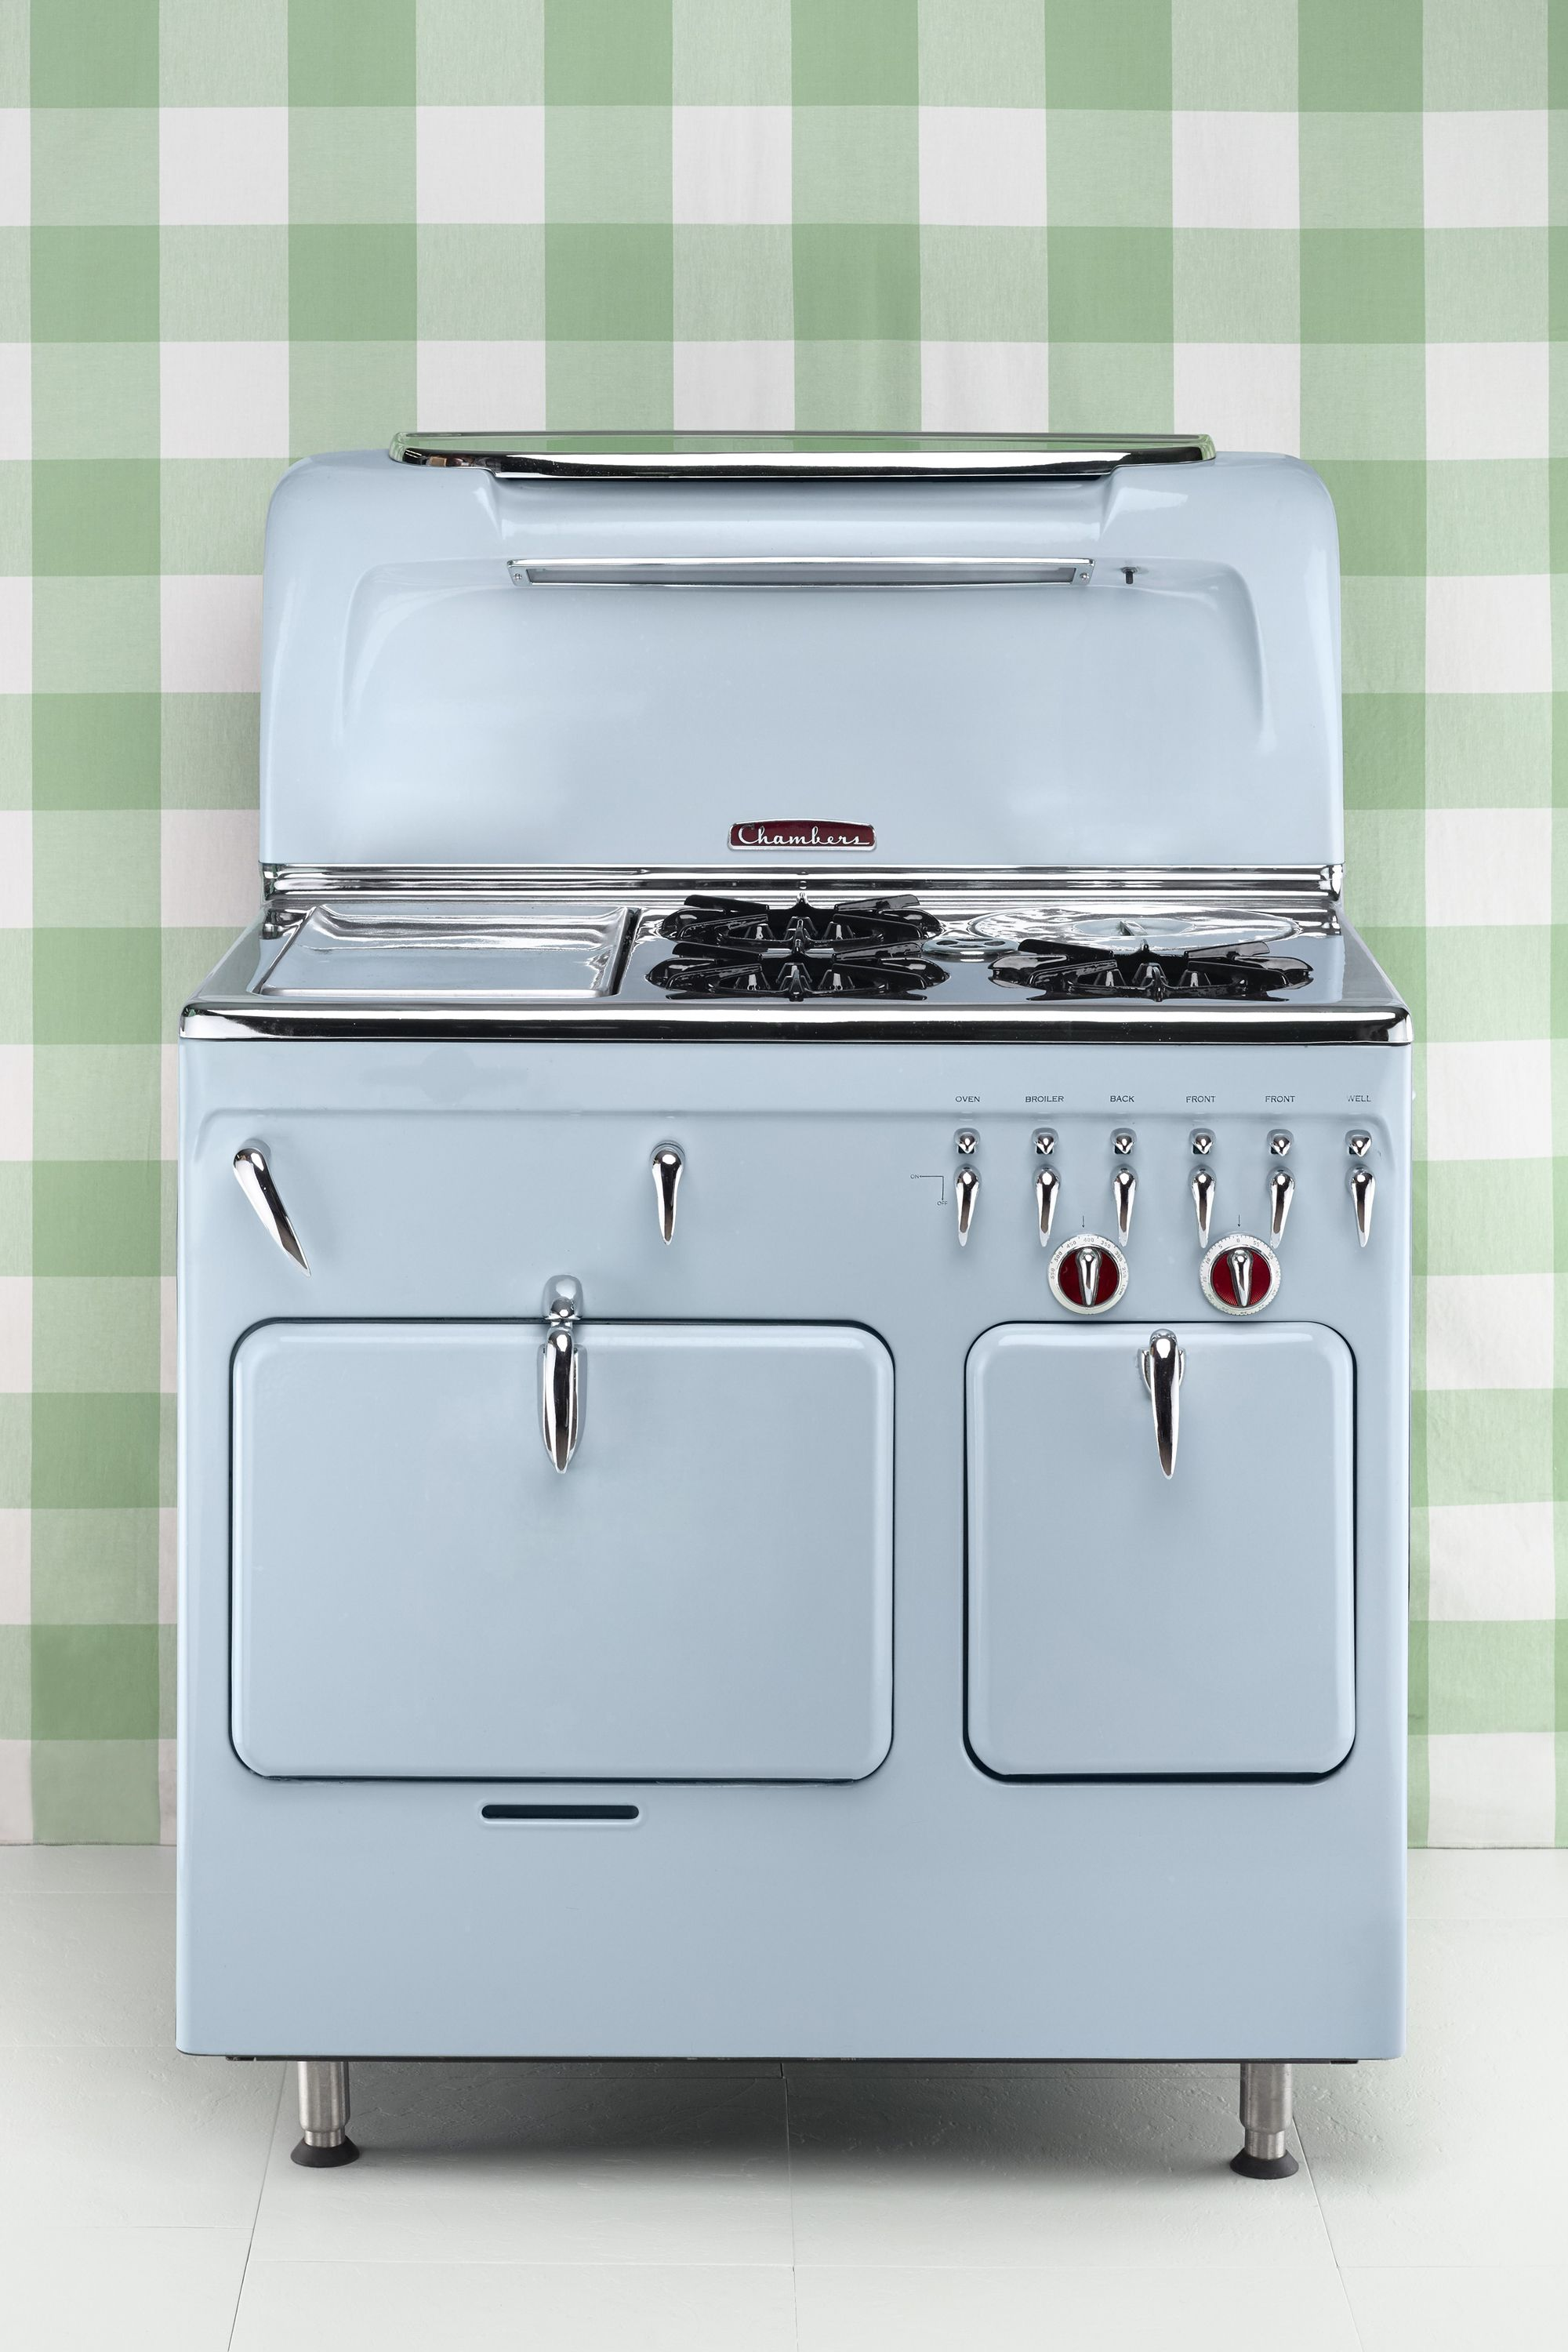 online in kitchen archives ovens ex category stoves mu shop cookers galaxy mauritius product